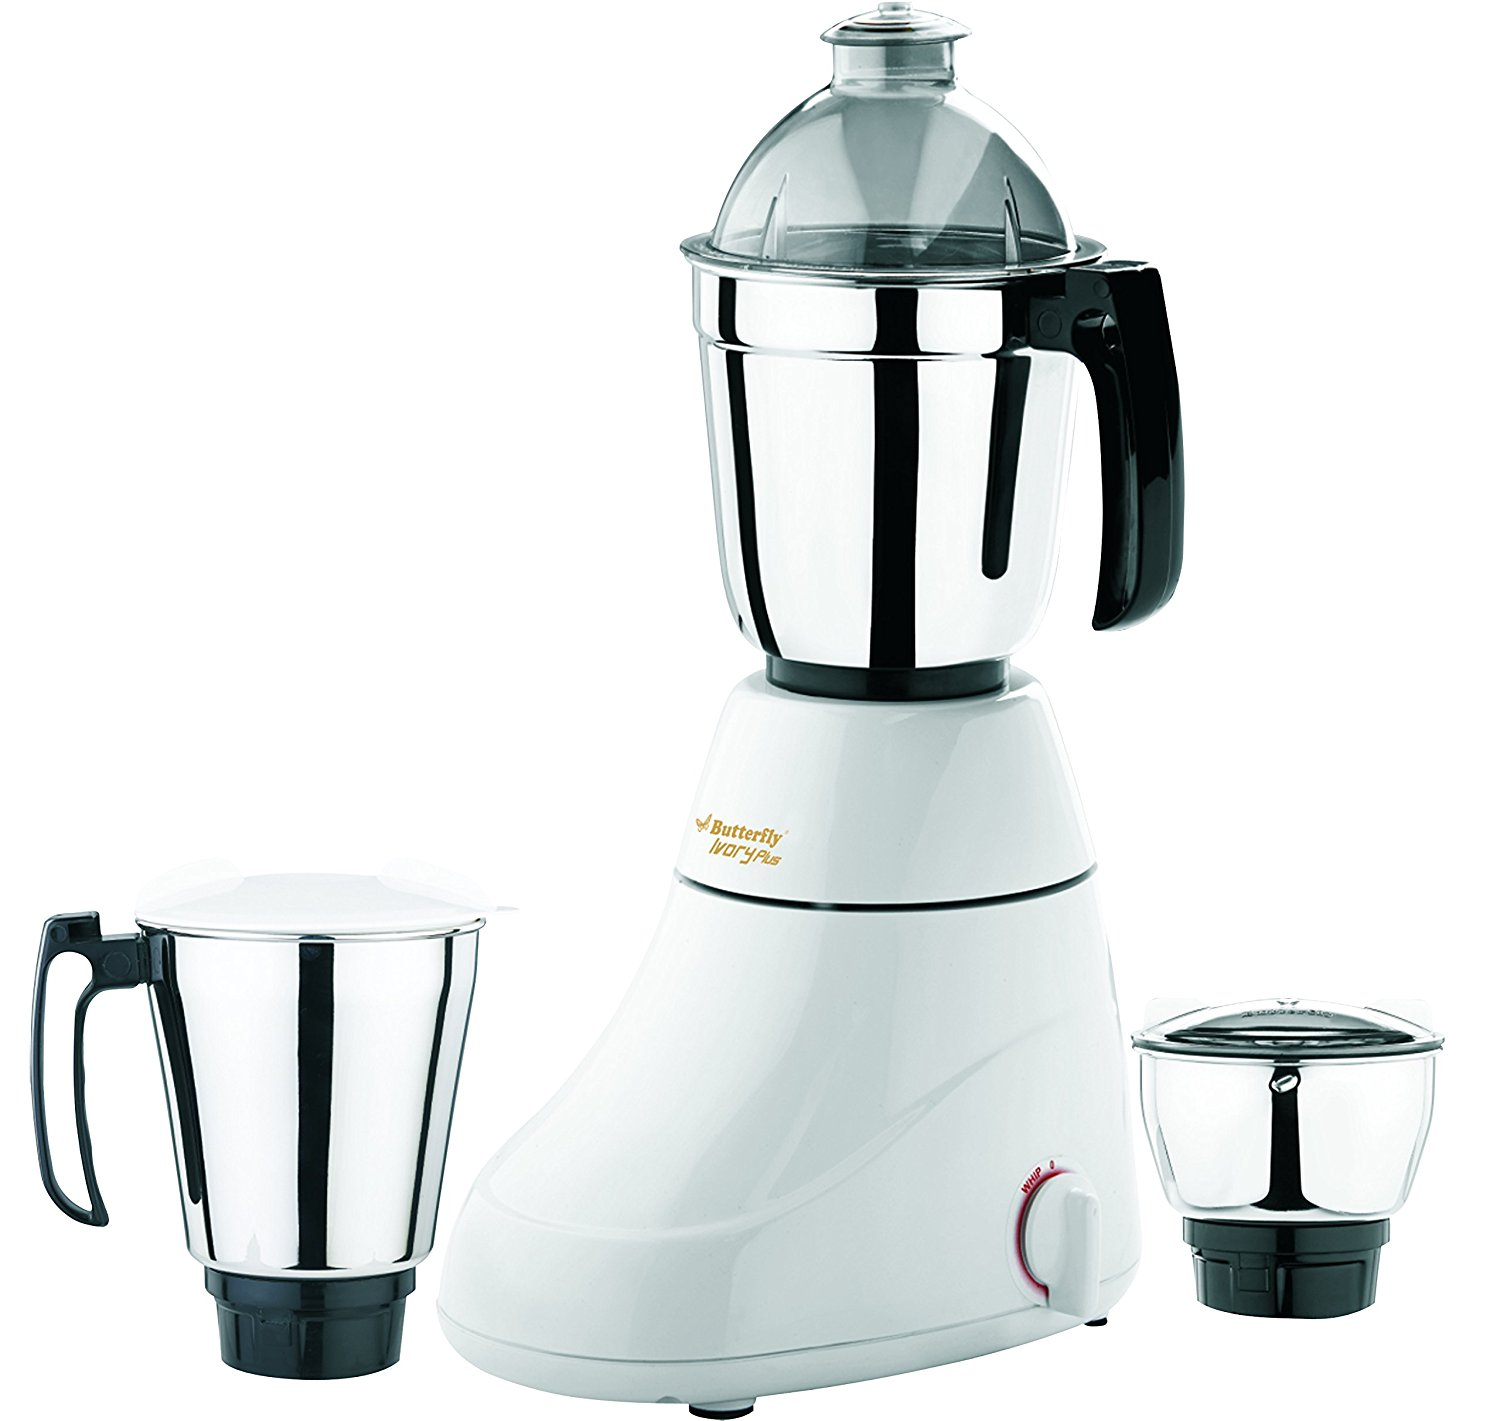 Butterfly Ivory Plus 750-Watt Mixer Grinder with 3 Jars Image